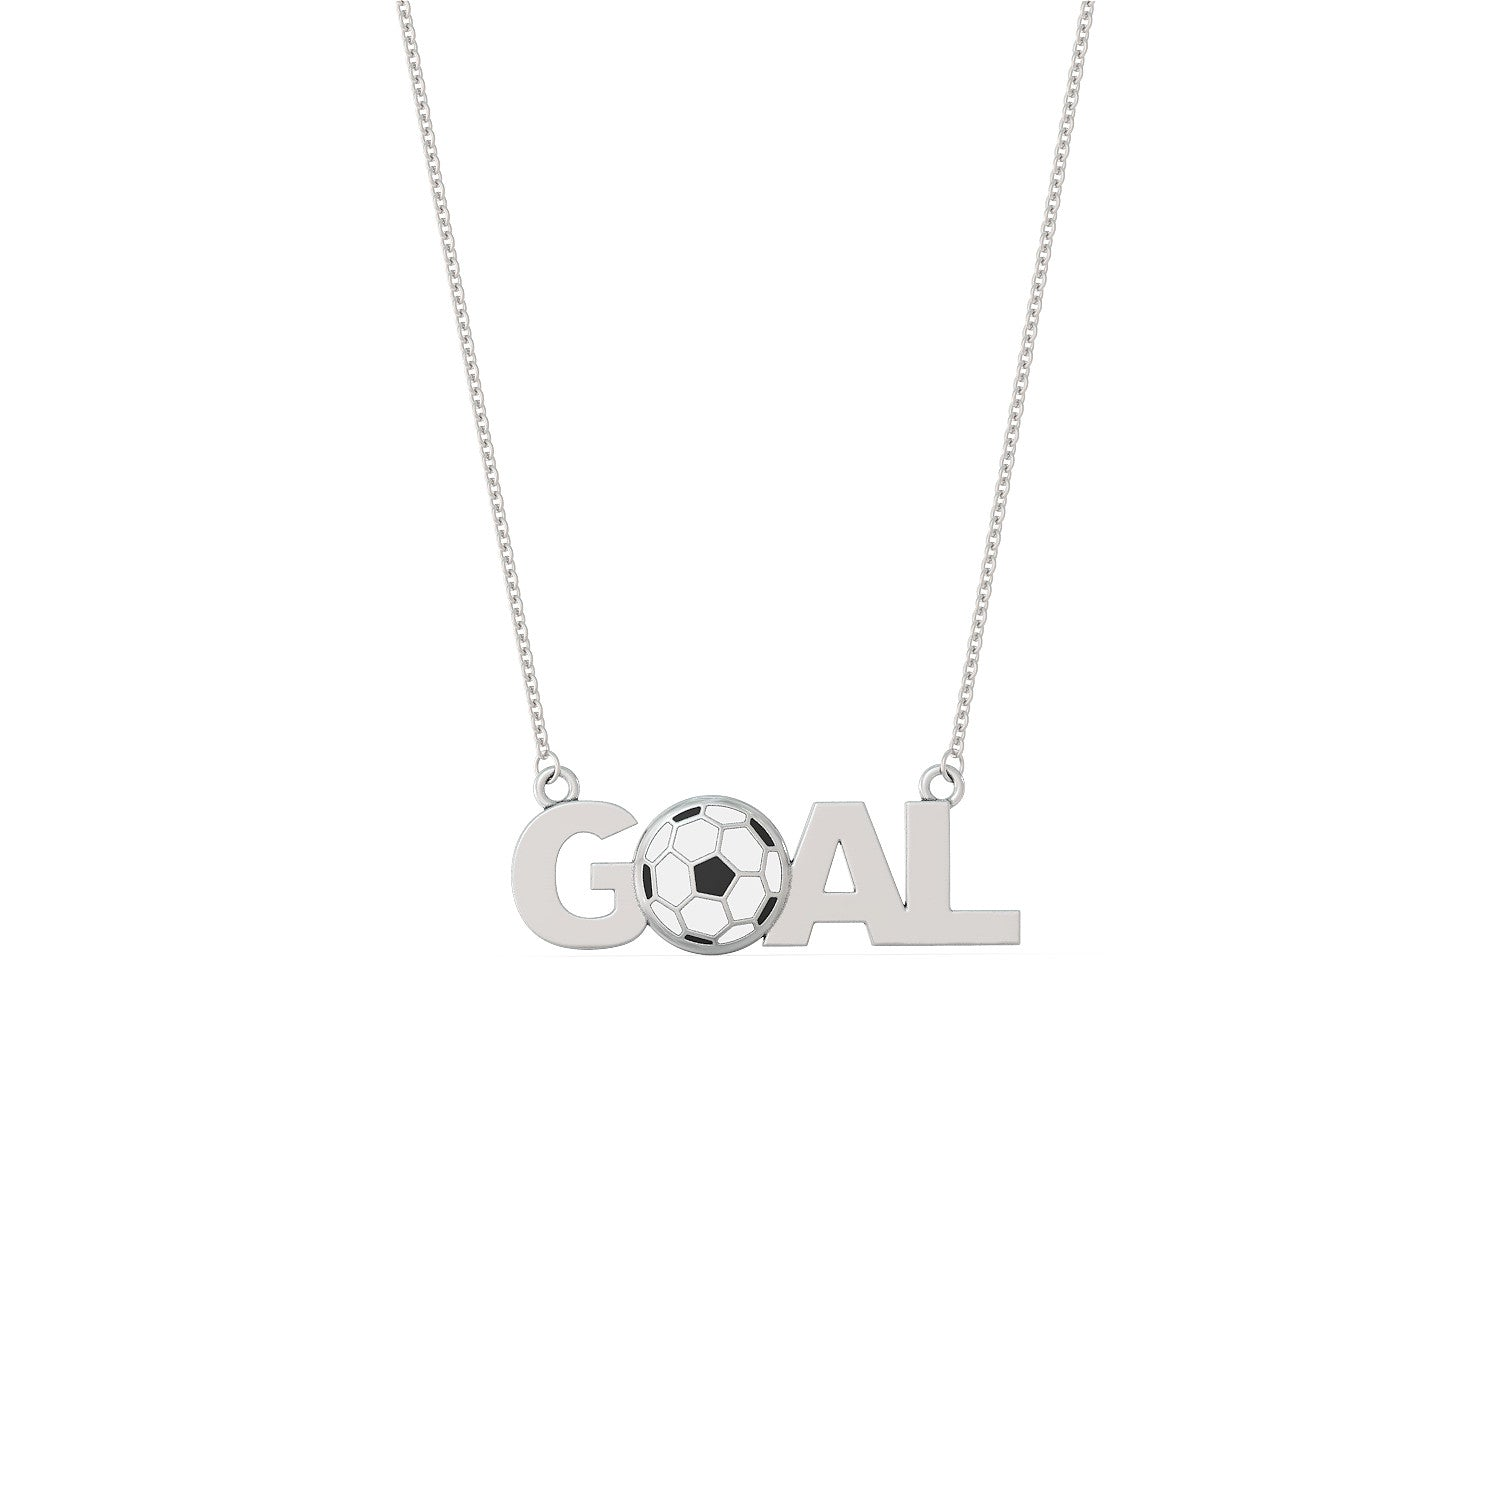 Goal Necklace